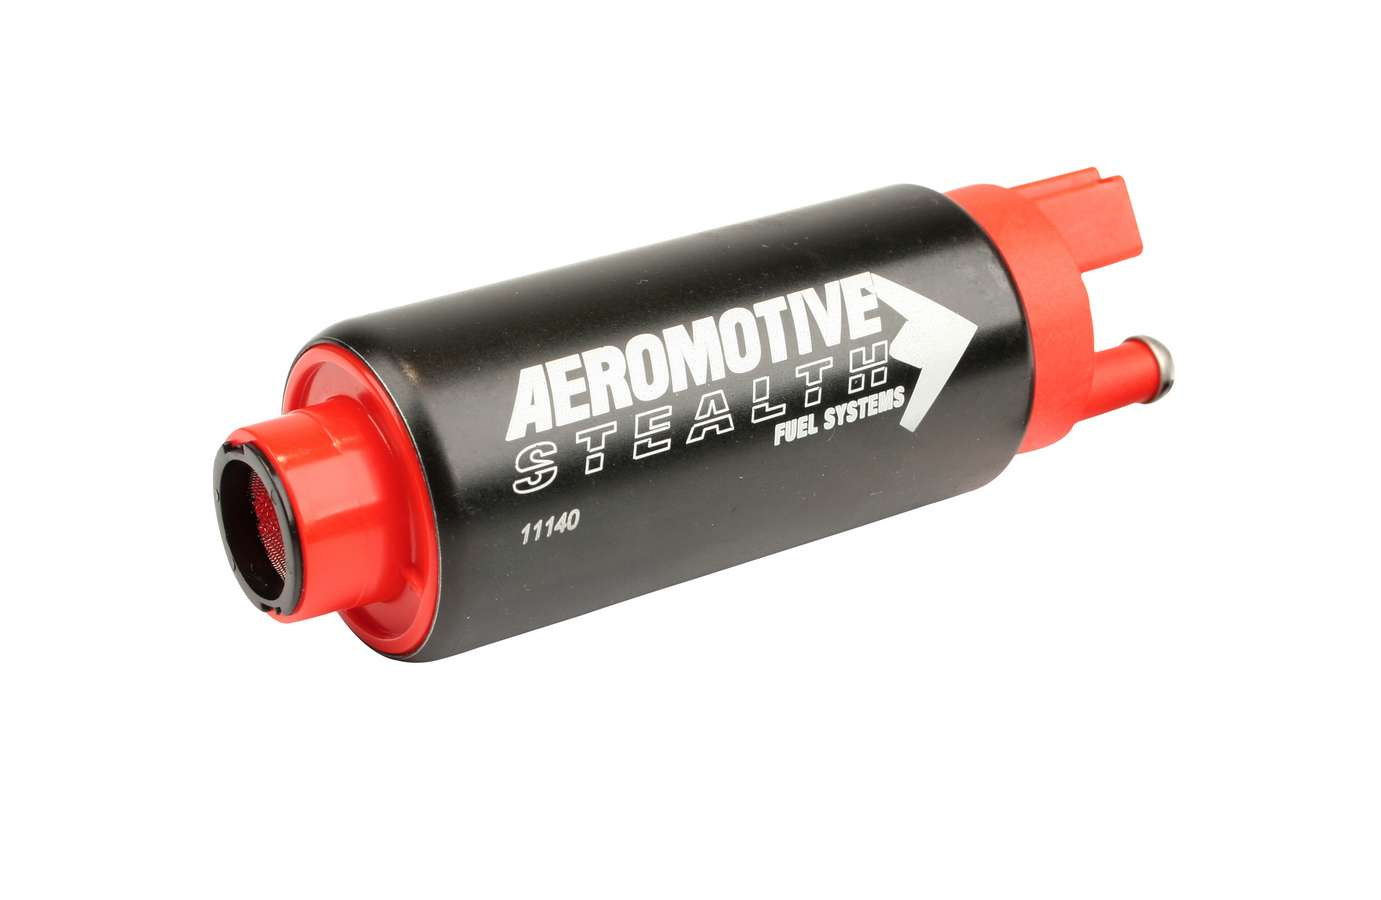 340 Stealth Fuel Pump - Superseded 08/24/16 VD - DISCONTINUED